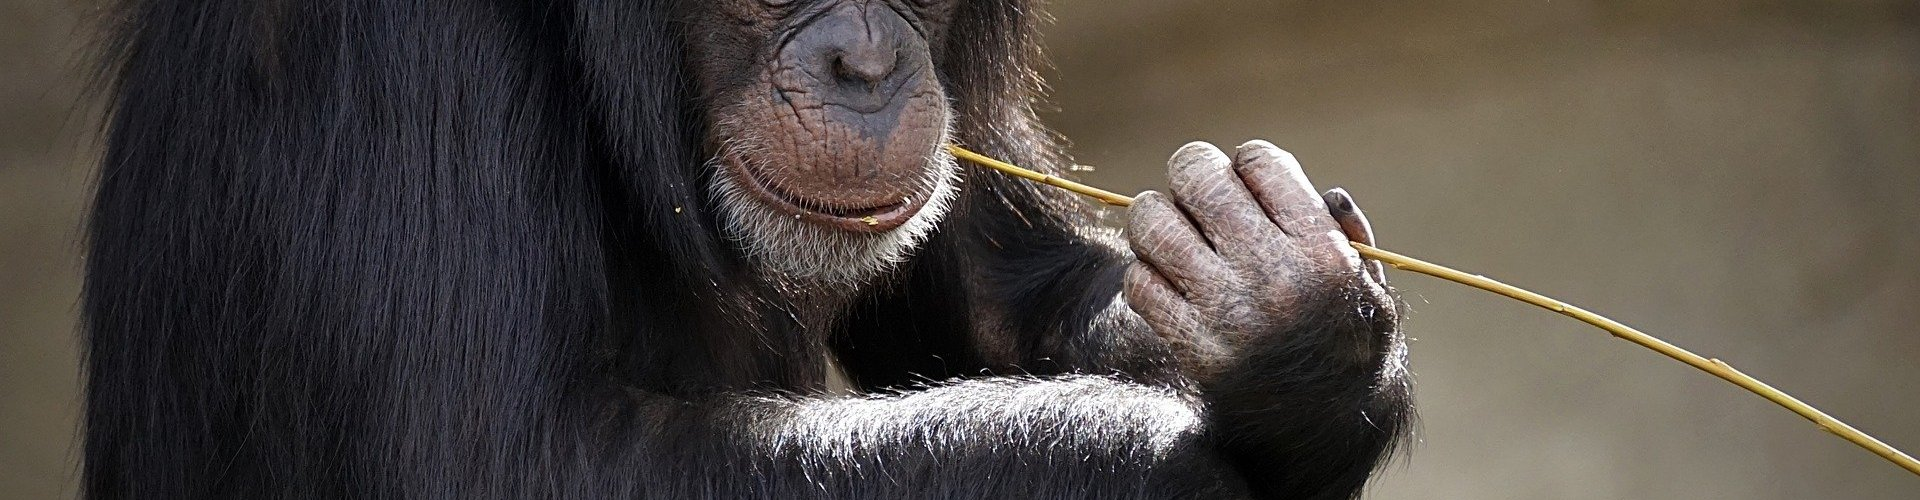 chimpanzees sitting with a strand of grass in its mouth